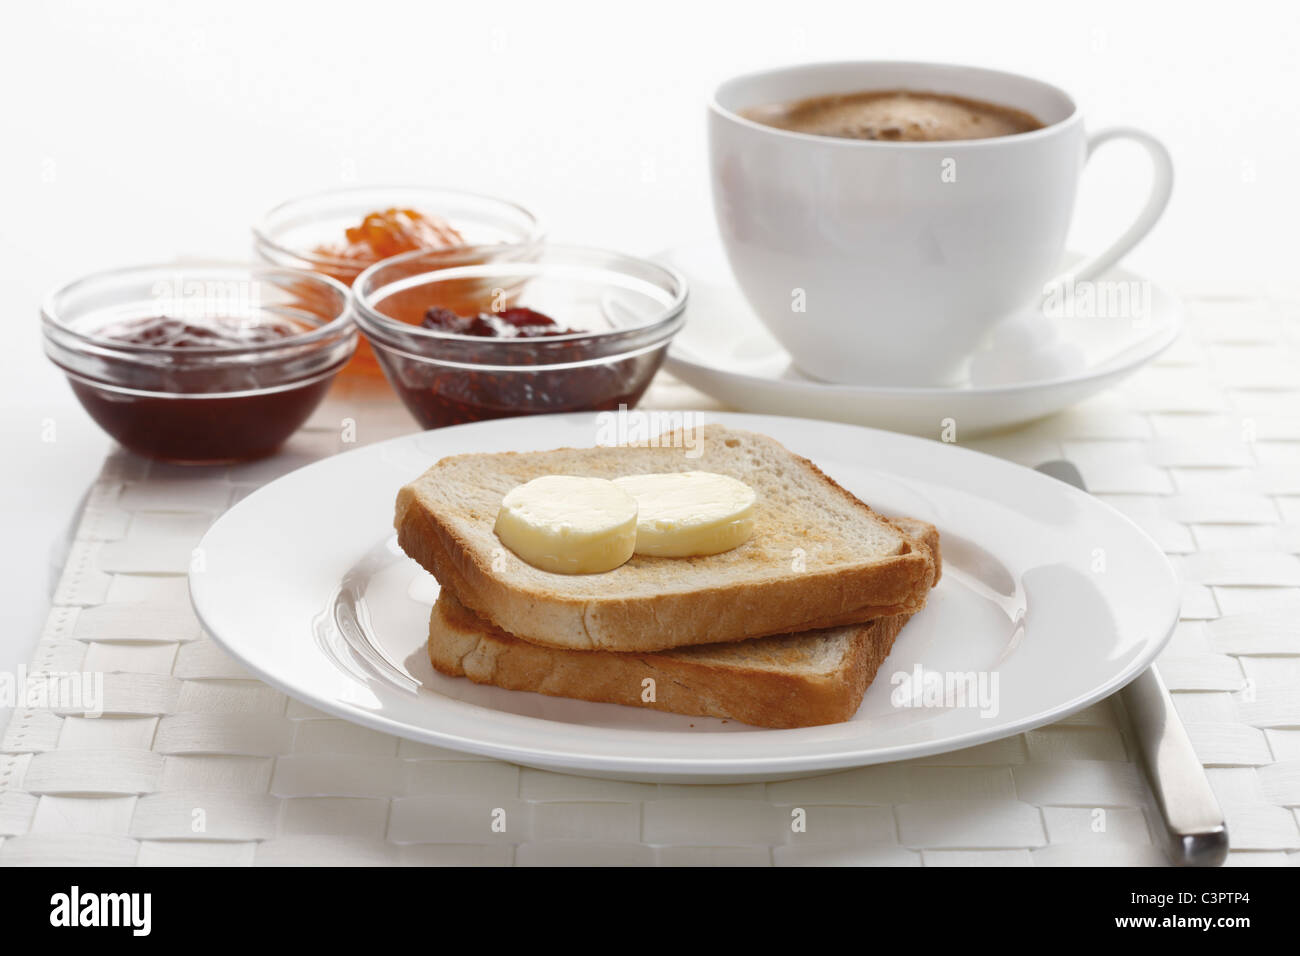 Ready breakfast on place mat, close up - Stock Image